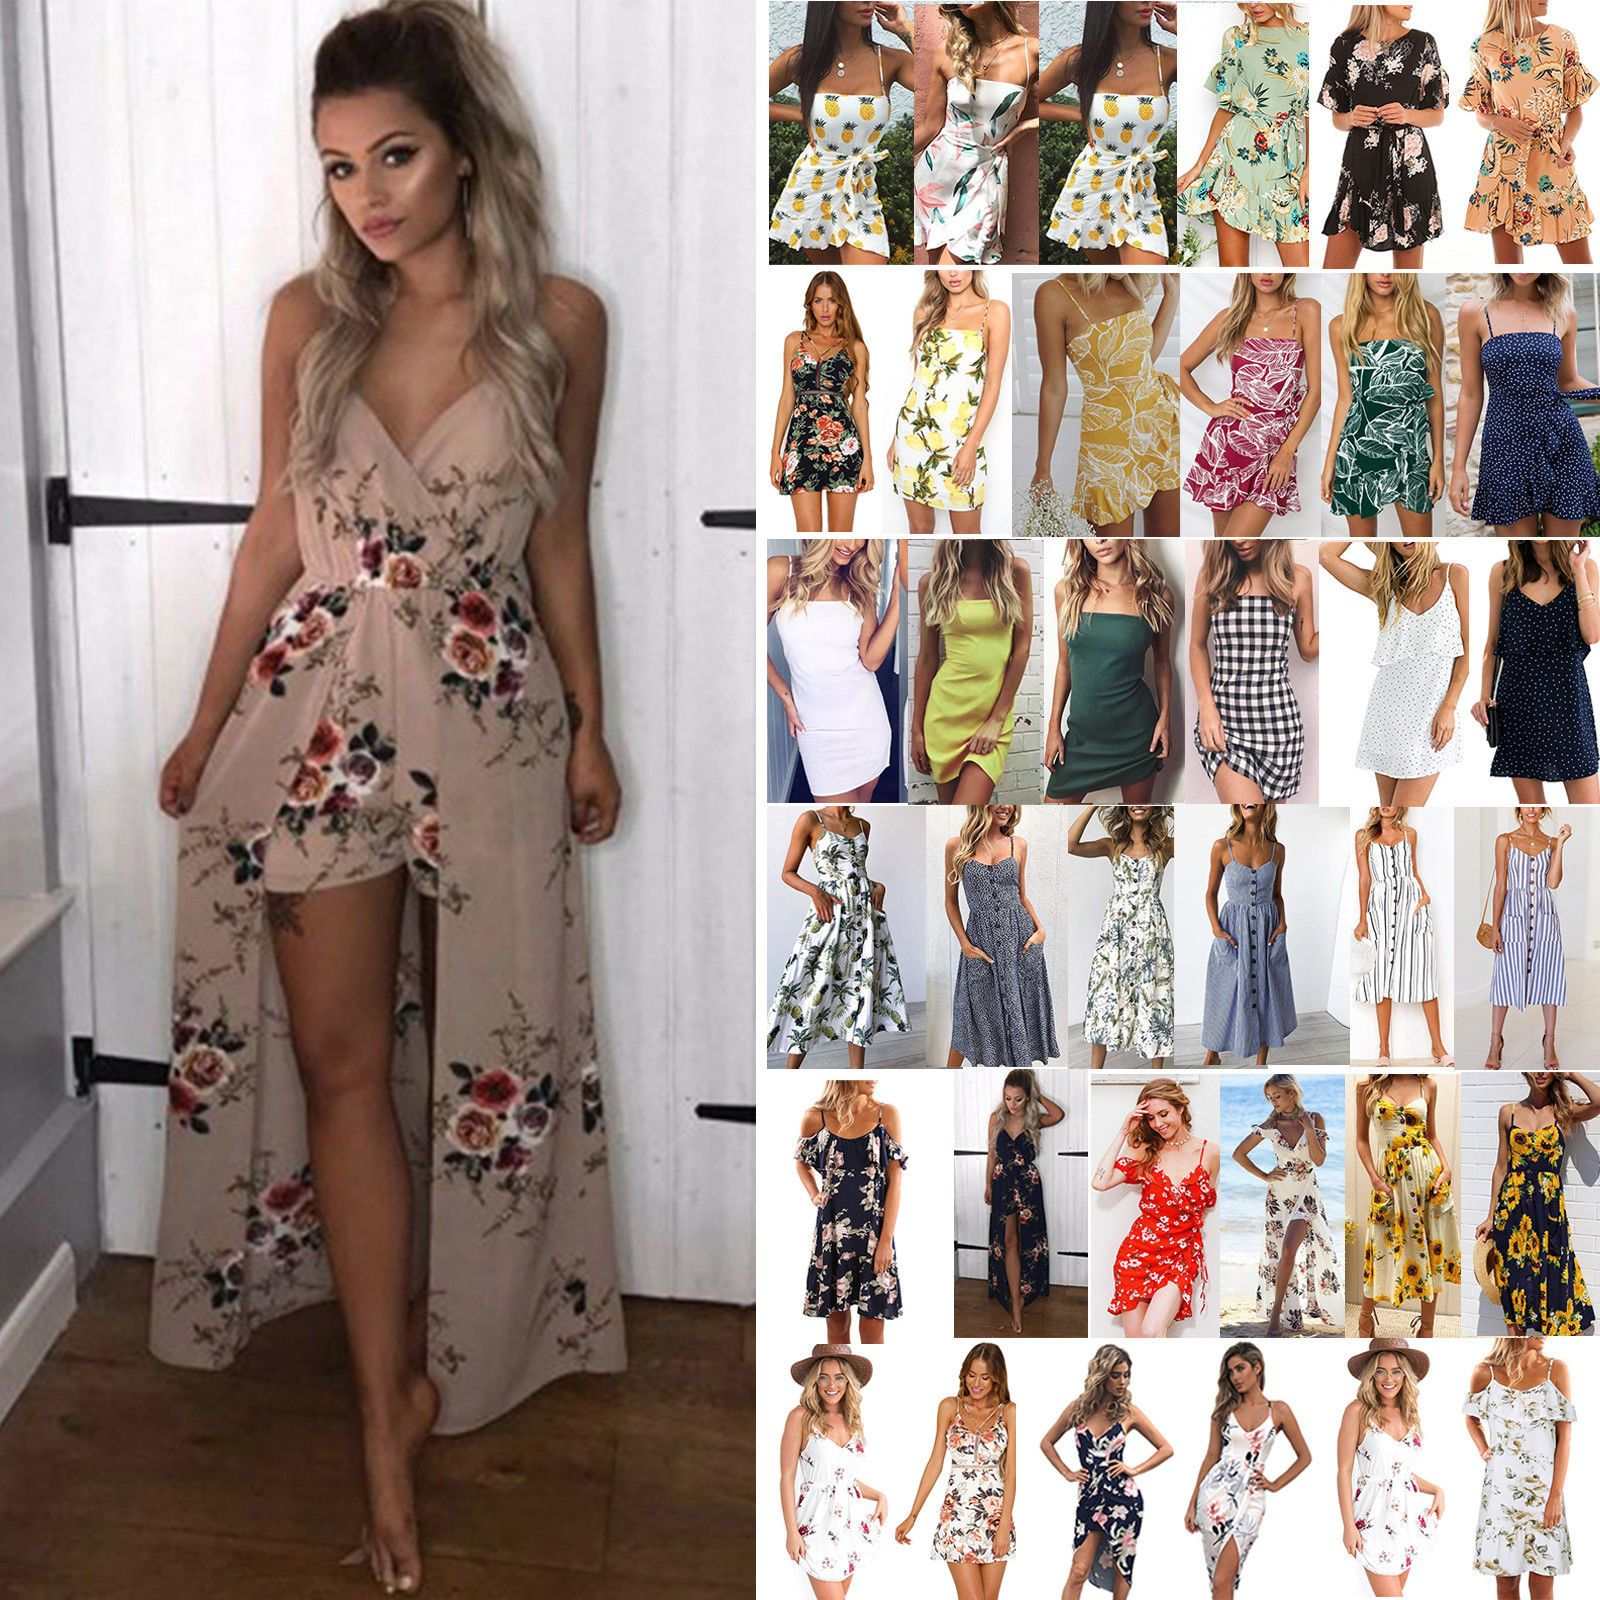 d86f3dad40 Women Casual Vacation Solid Color Loose Sundress Summer Party Holiday Mini  Dress - Khaki Dresses -